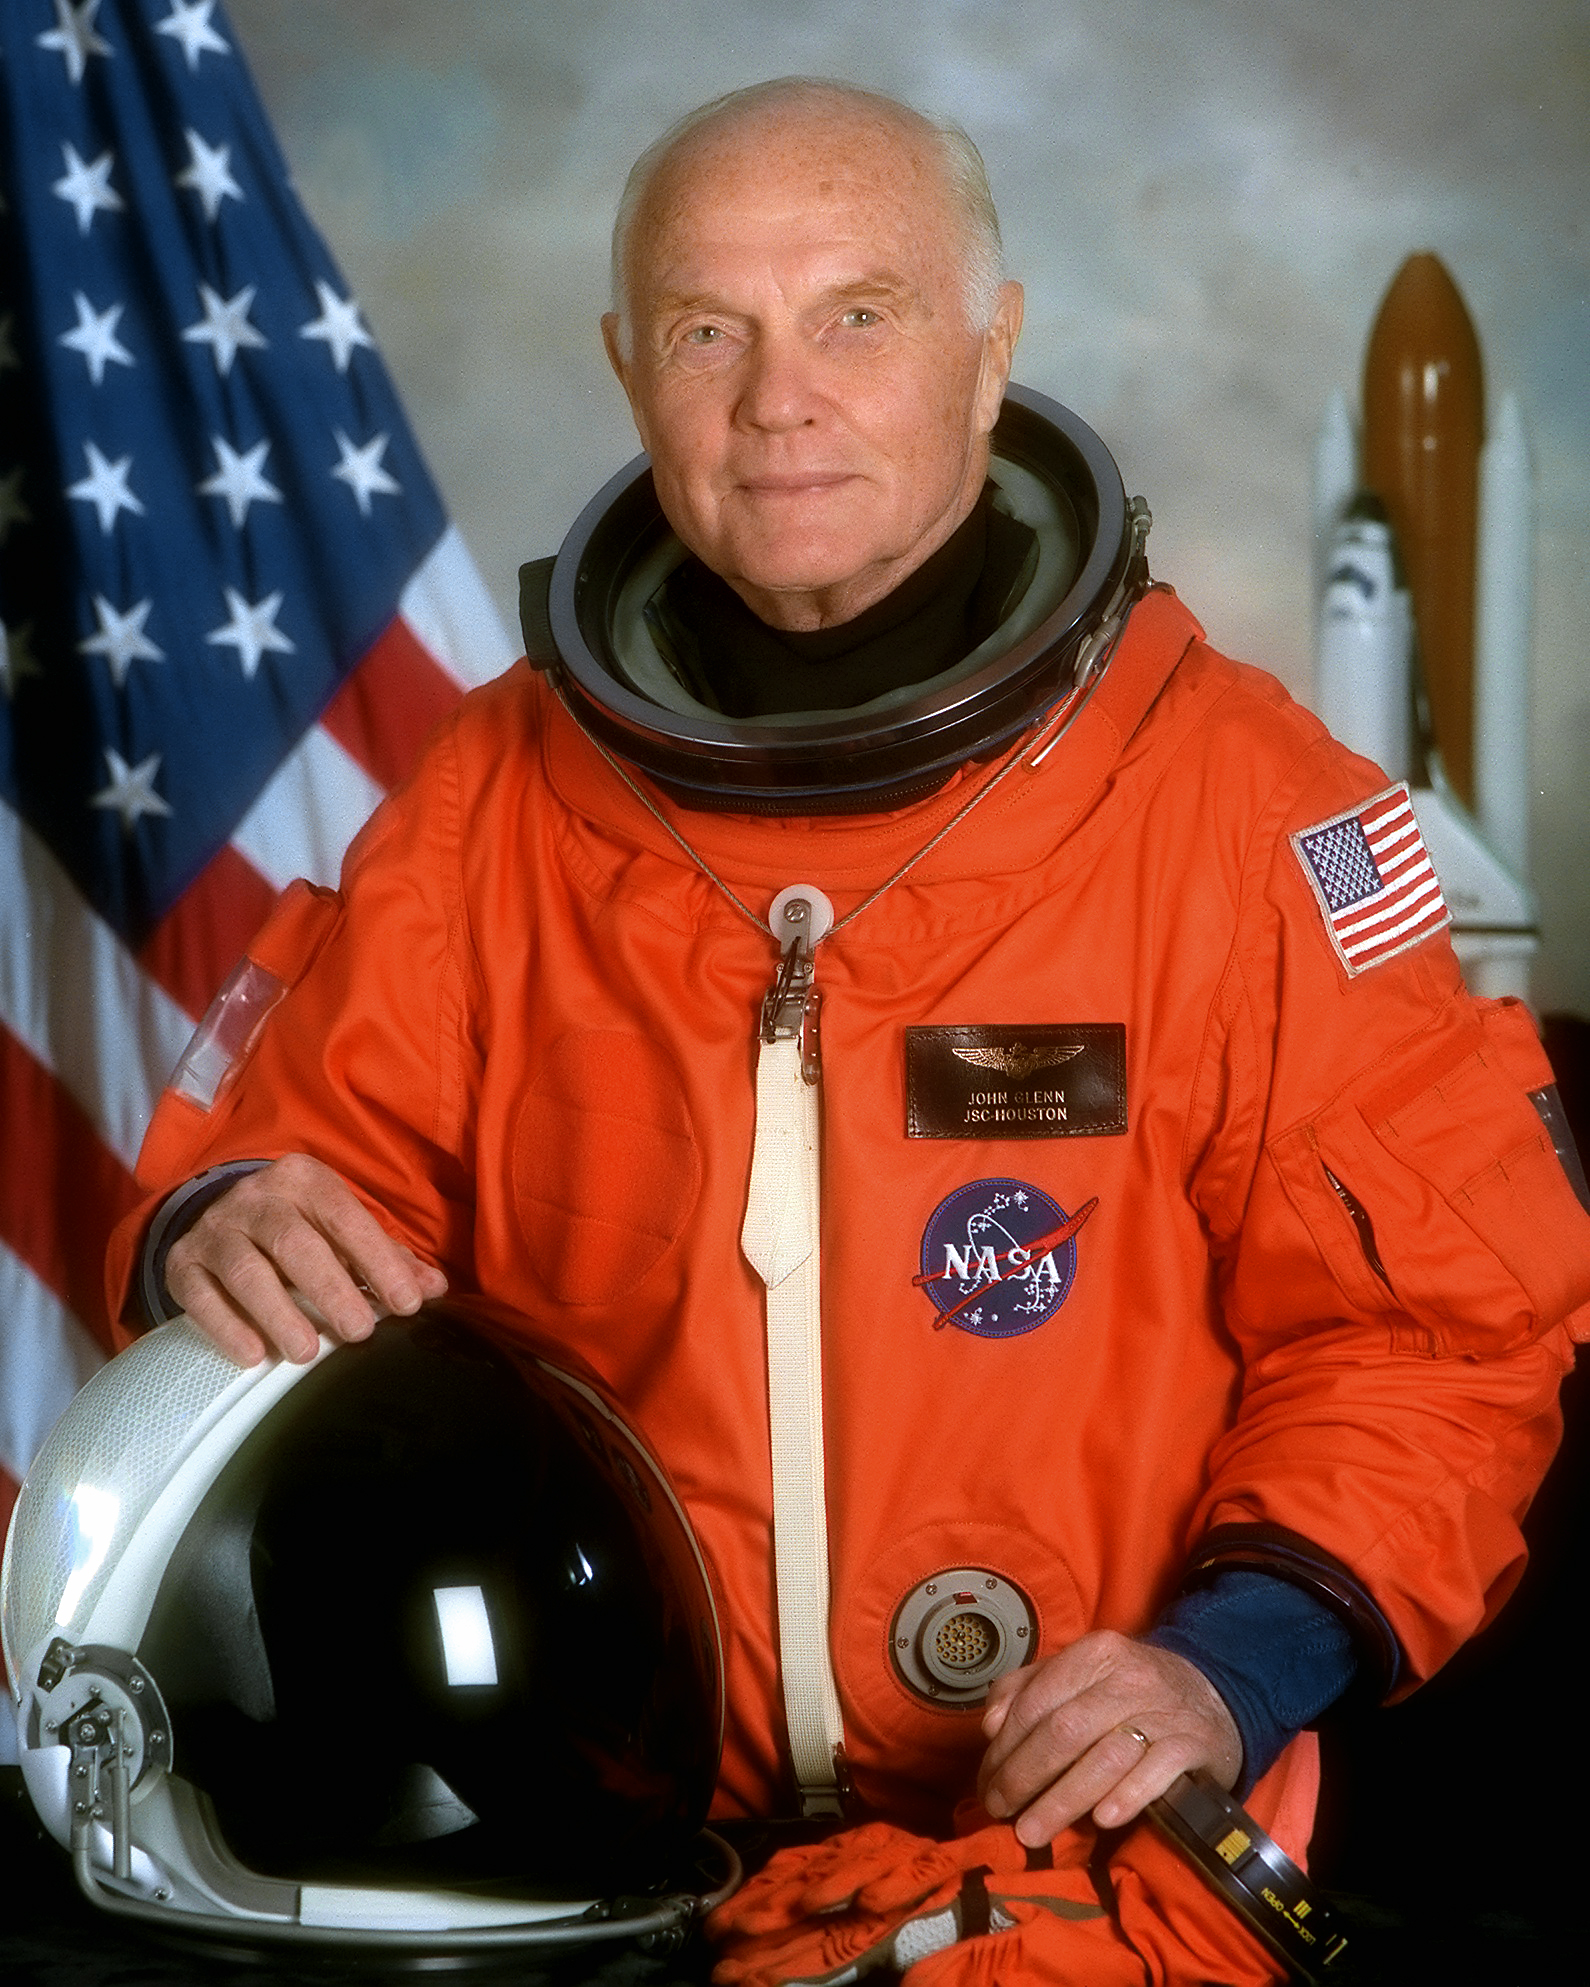 NASA portrait of Senator John Glenn for his second space flight on October 29, 1998, on Space Shuttle Discovery's STS-95.